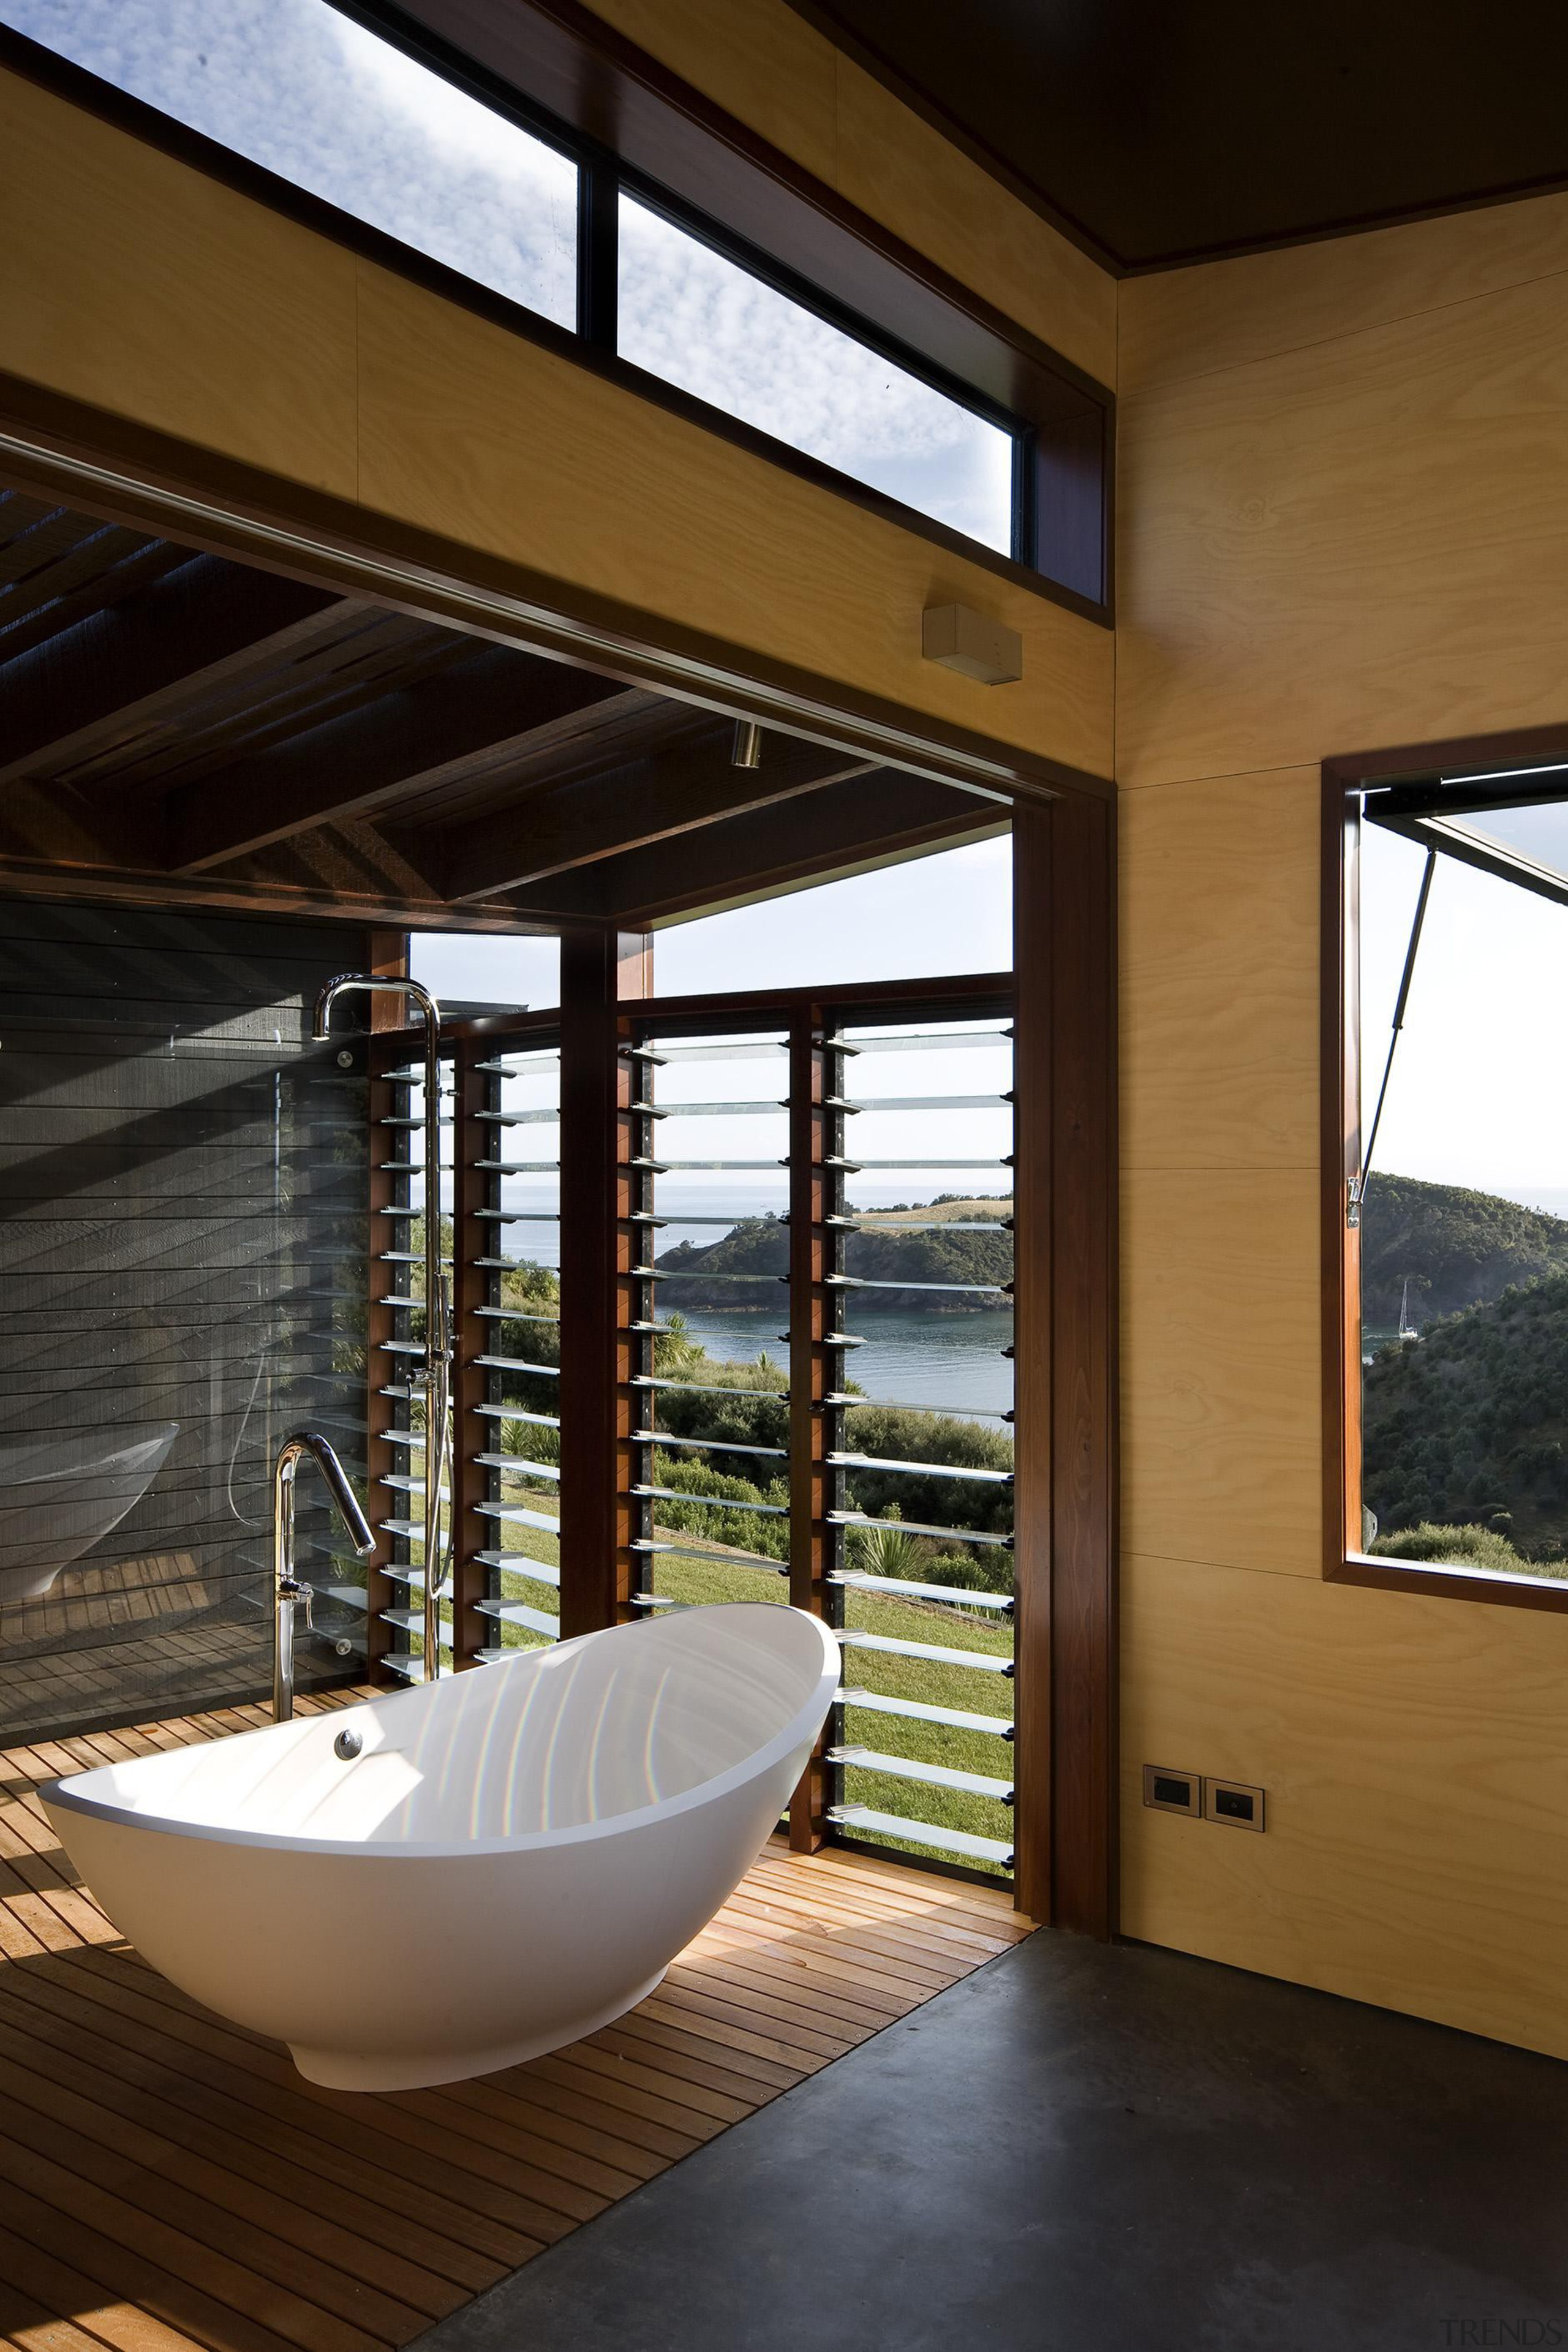 Waiheke Island, Auckland - Owhanake Bay - architecture architecture, bathroom, daylighting, house, interior design, window, black, brown